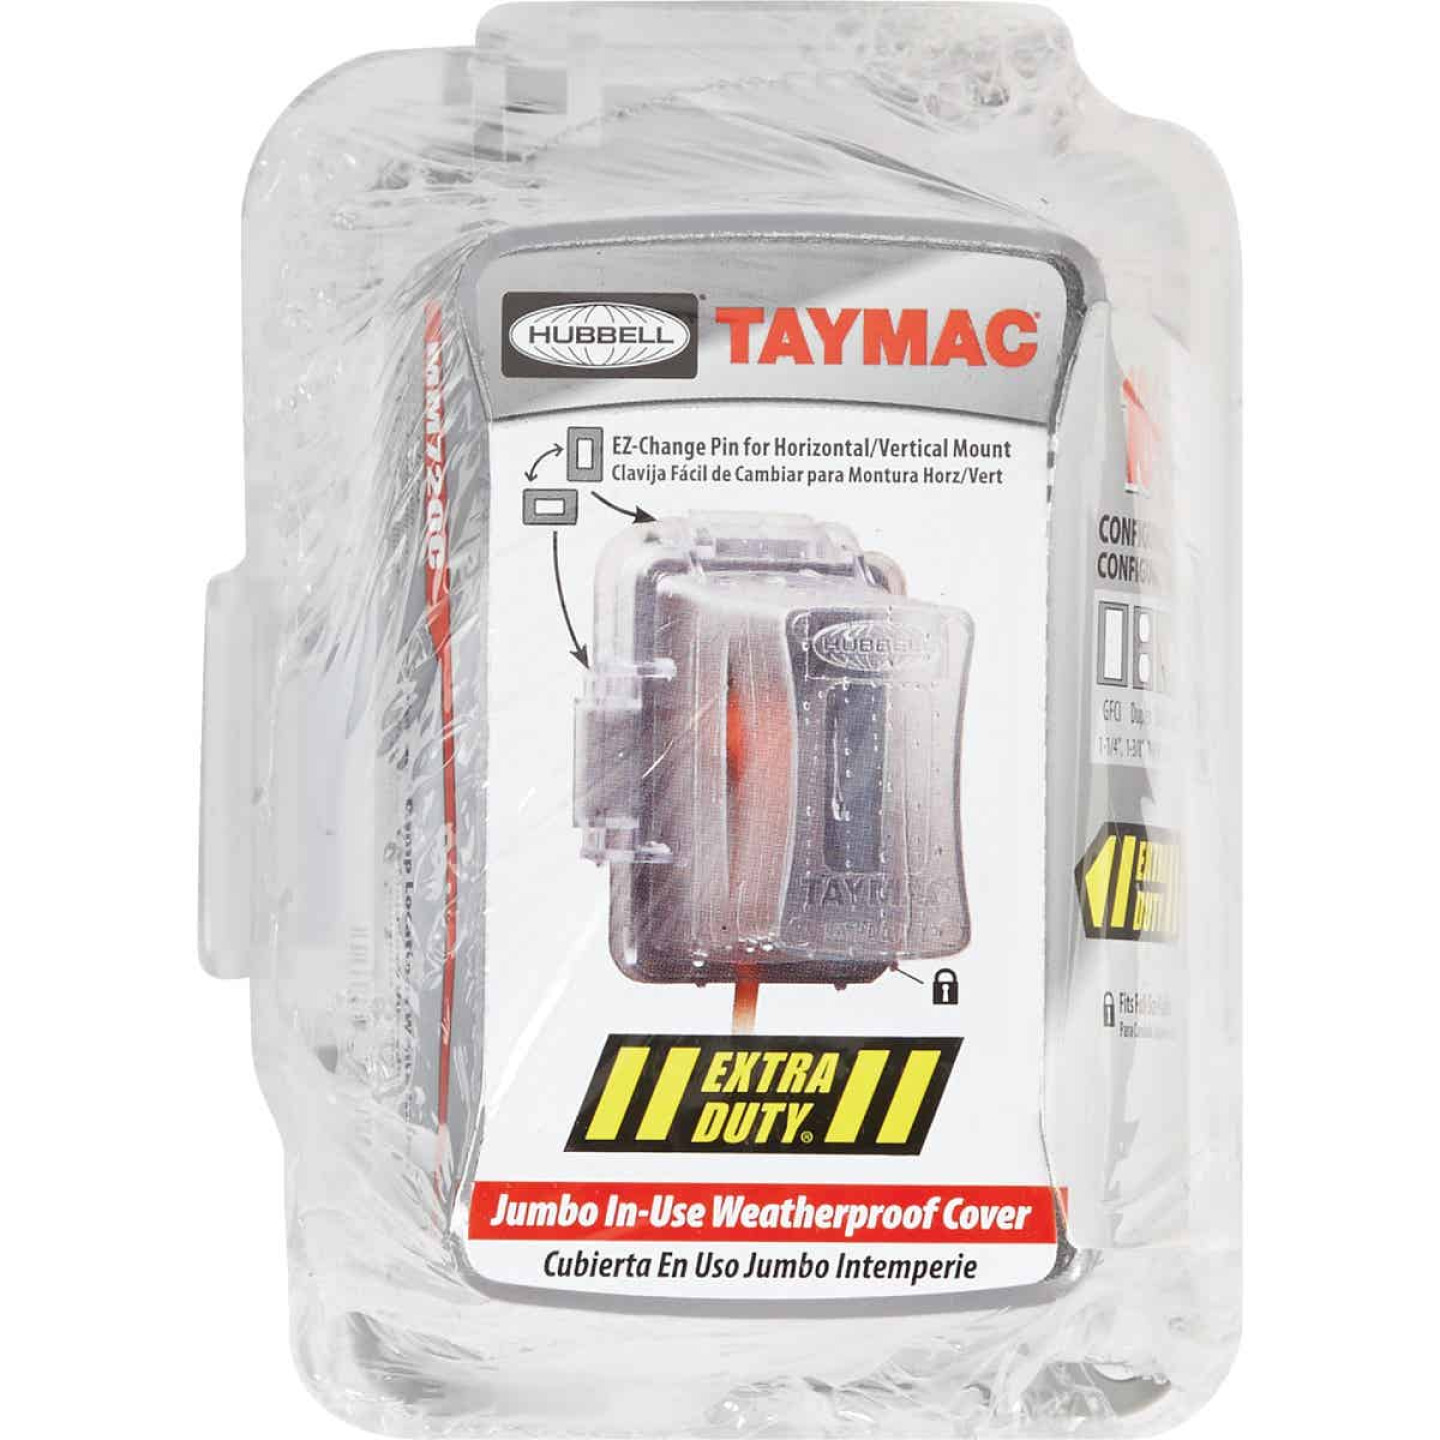 TayMac Extra Duty Single Gang Vertical/Horizontal Mount Polycarbonate Clear Deep In-Use Outdoor Outlet Cover Image 2